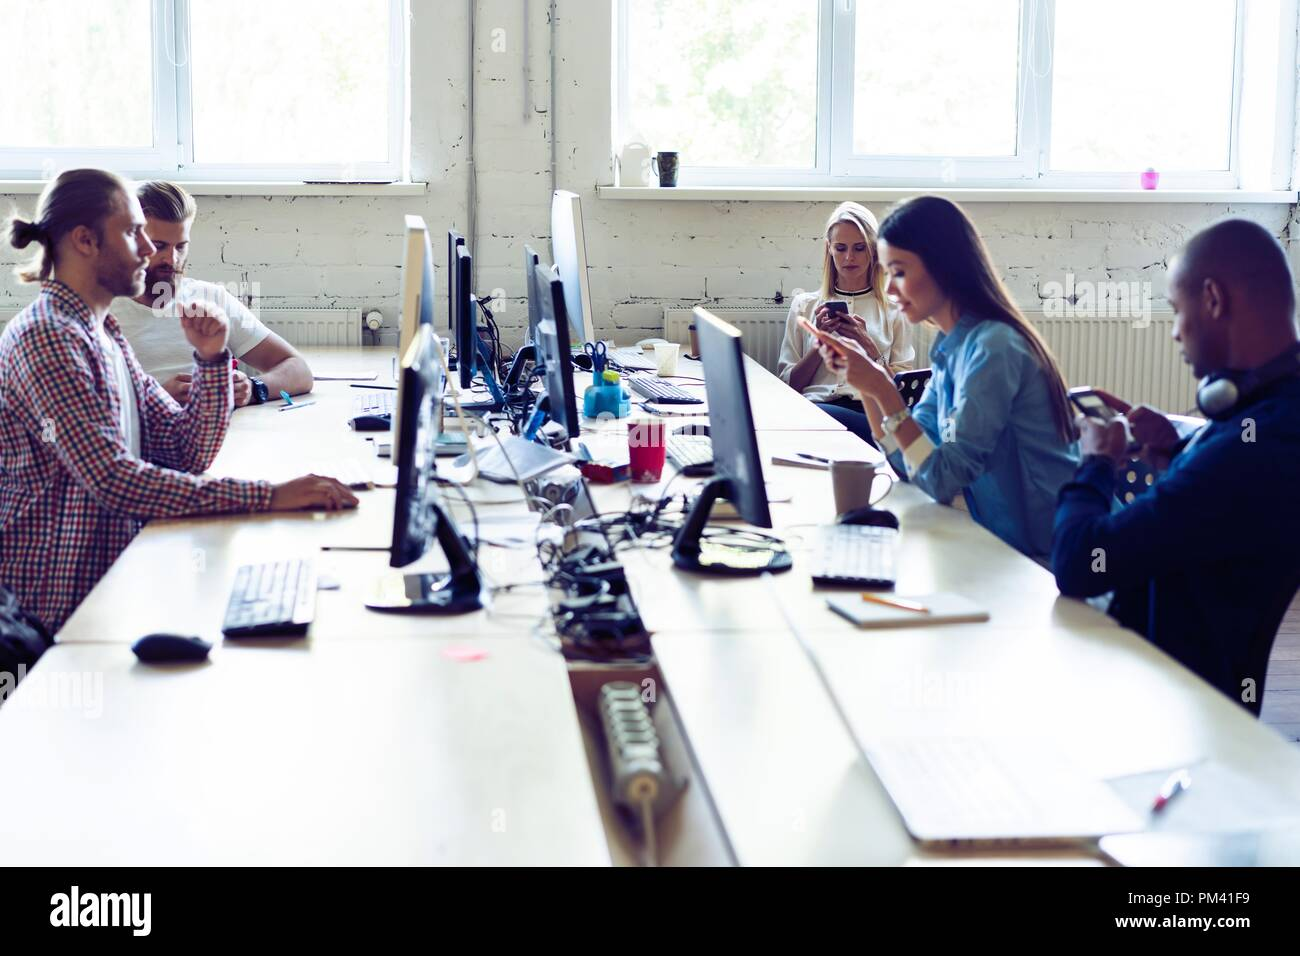 Just working day. Young modern colleagues in smart casual wear working together while spending time in the creative office. - Stock Image